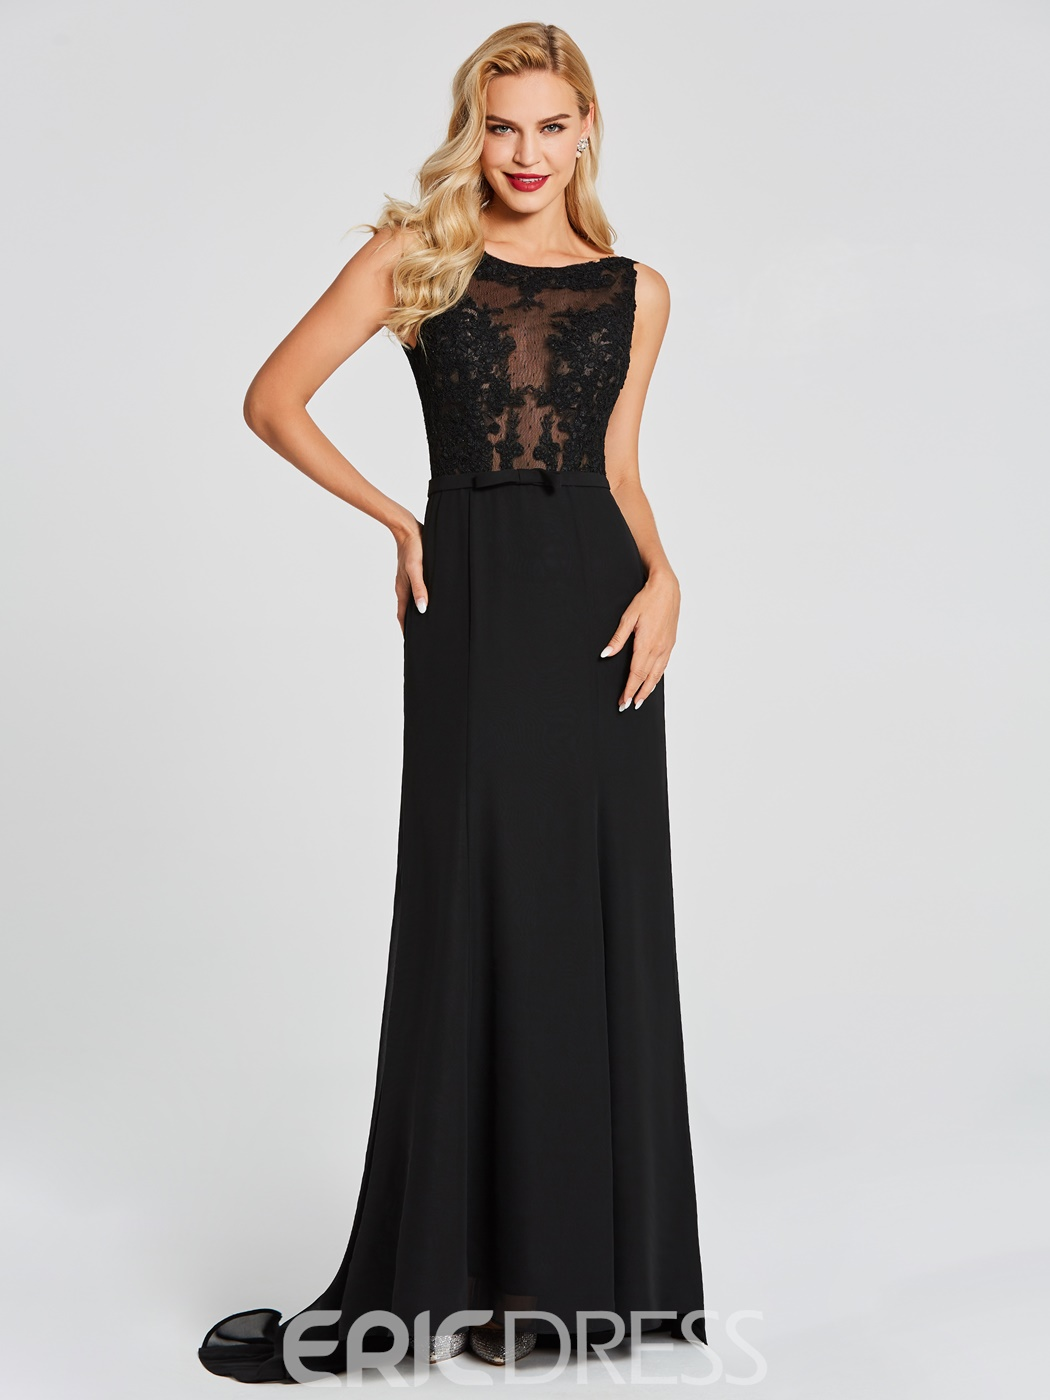 Ericdress Scoop Neck Lace Applique Mermaid Evening Dress